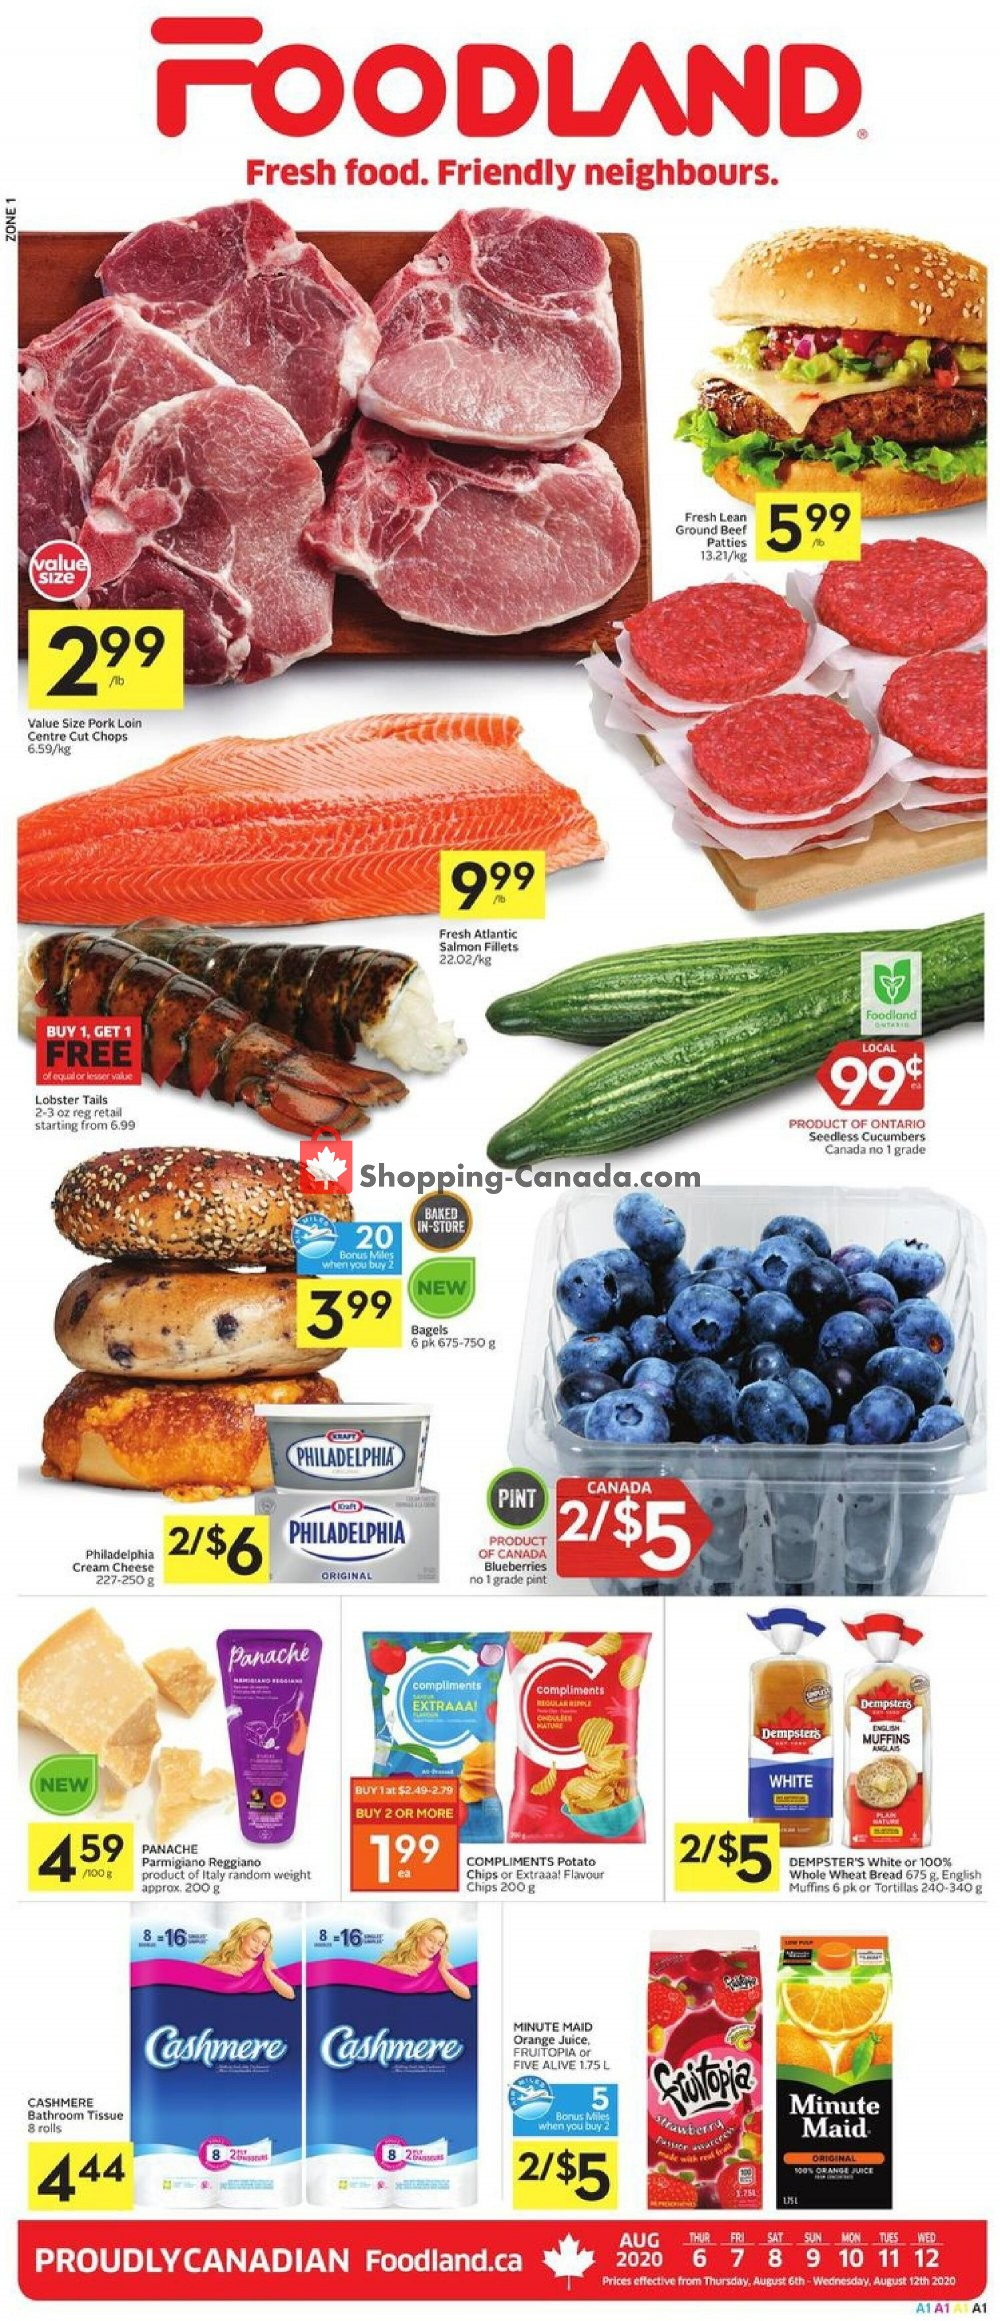 Flyer Foodland Canada - from Thursday August 6, 2020 to Wednesday August 12, 2020